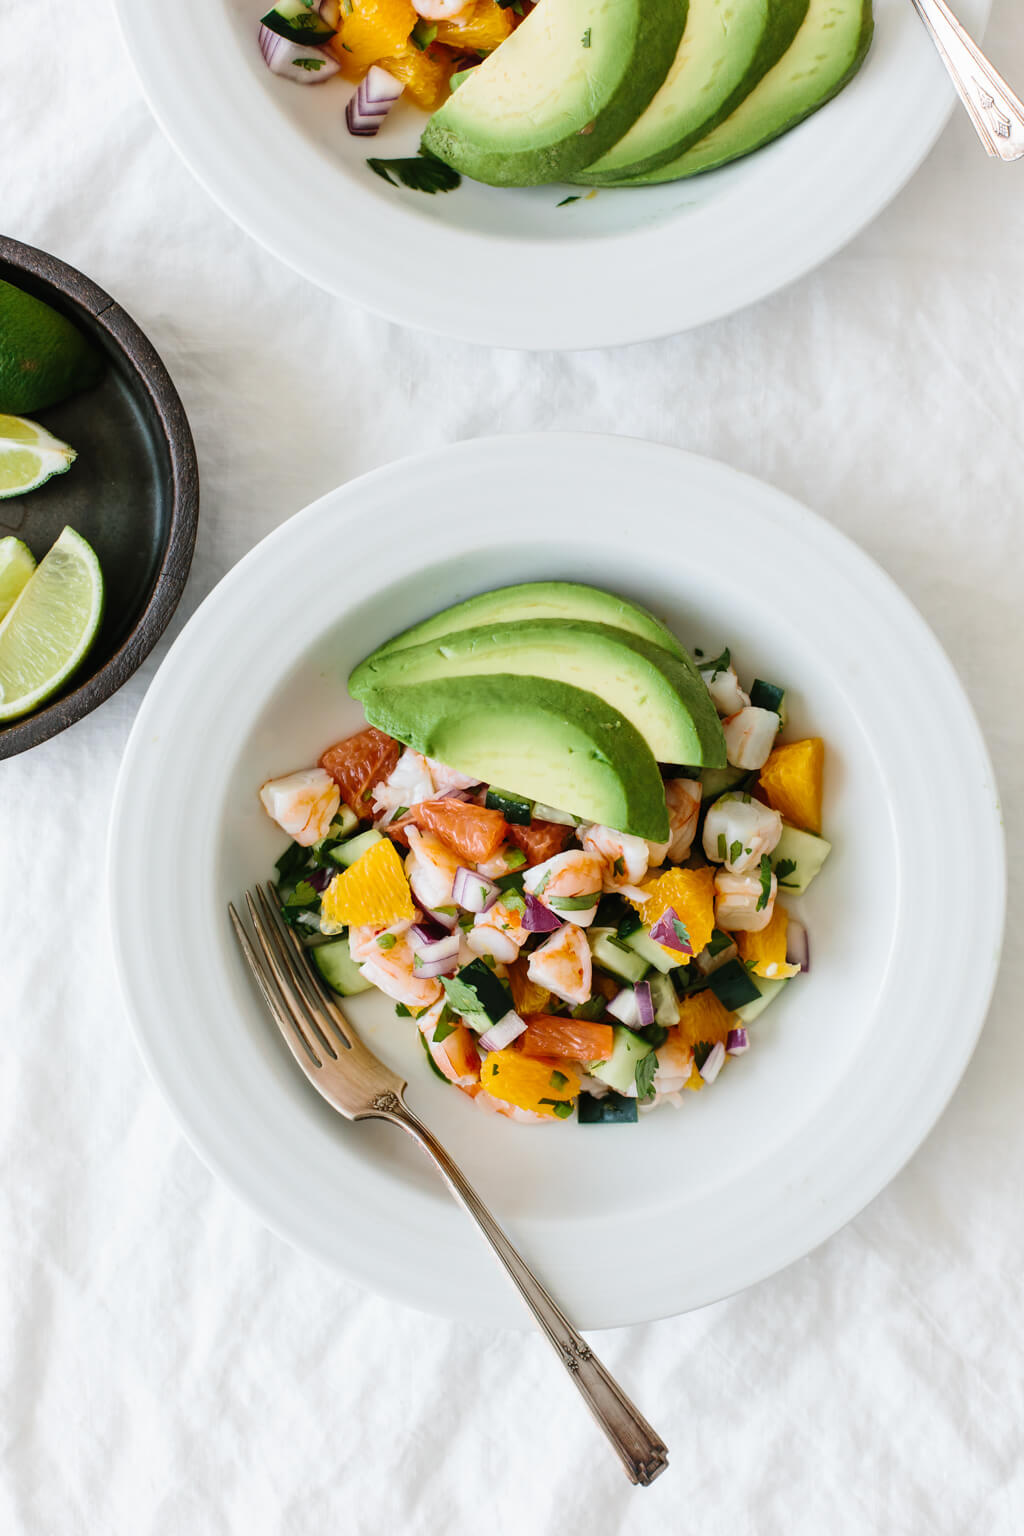 This shrimp ceviche is Mexican-inspired with a California citrus flair. It's amped up with orange and grapefruit, along with red onion, cucumber, jalapeno and cilantro for a bright, light and delicious shrimp ceviche recipe.